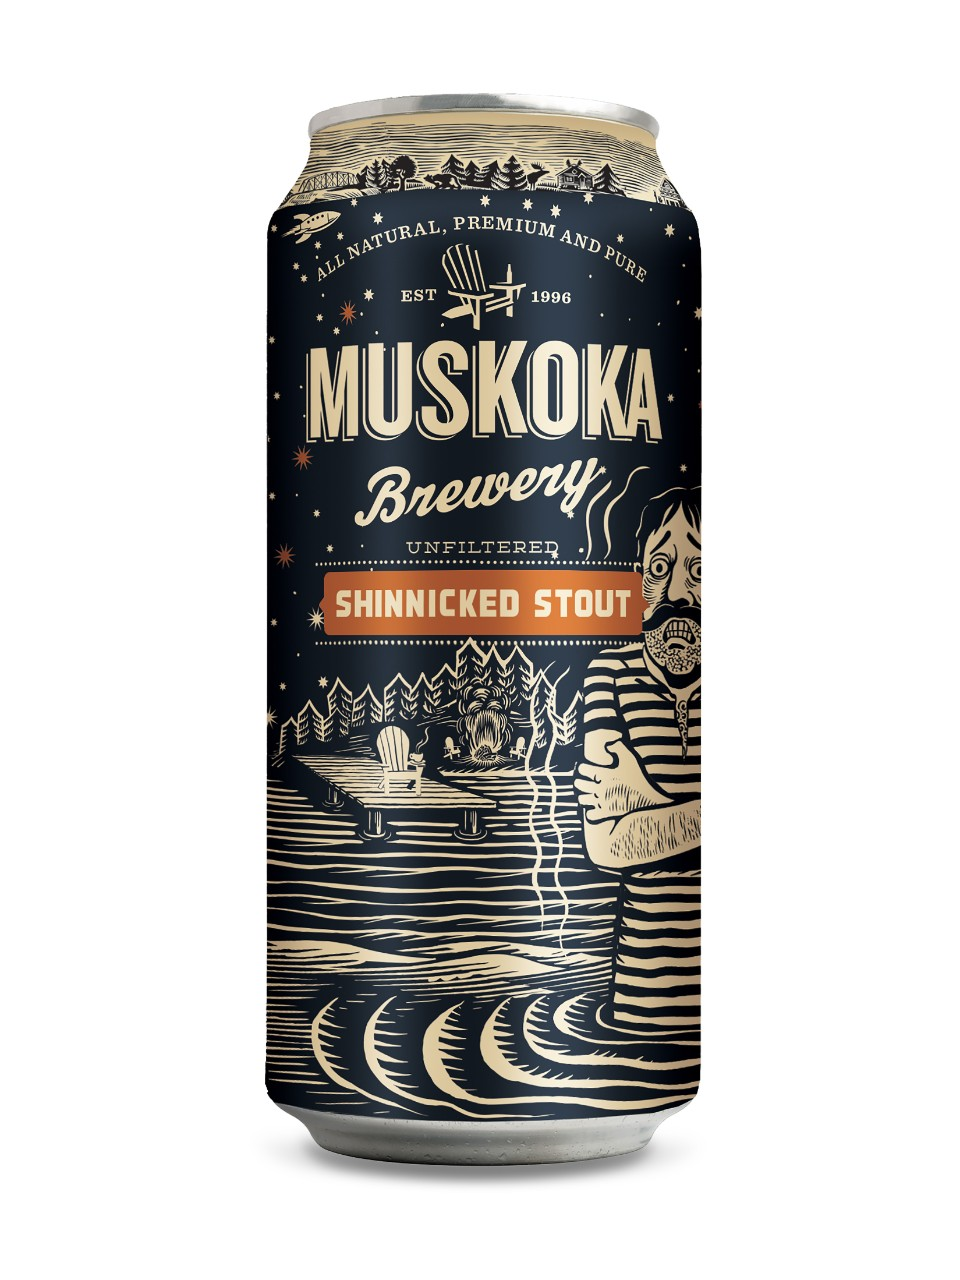 A product image for Muskoka Shinnicked Stout